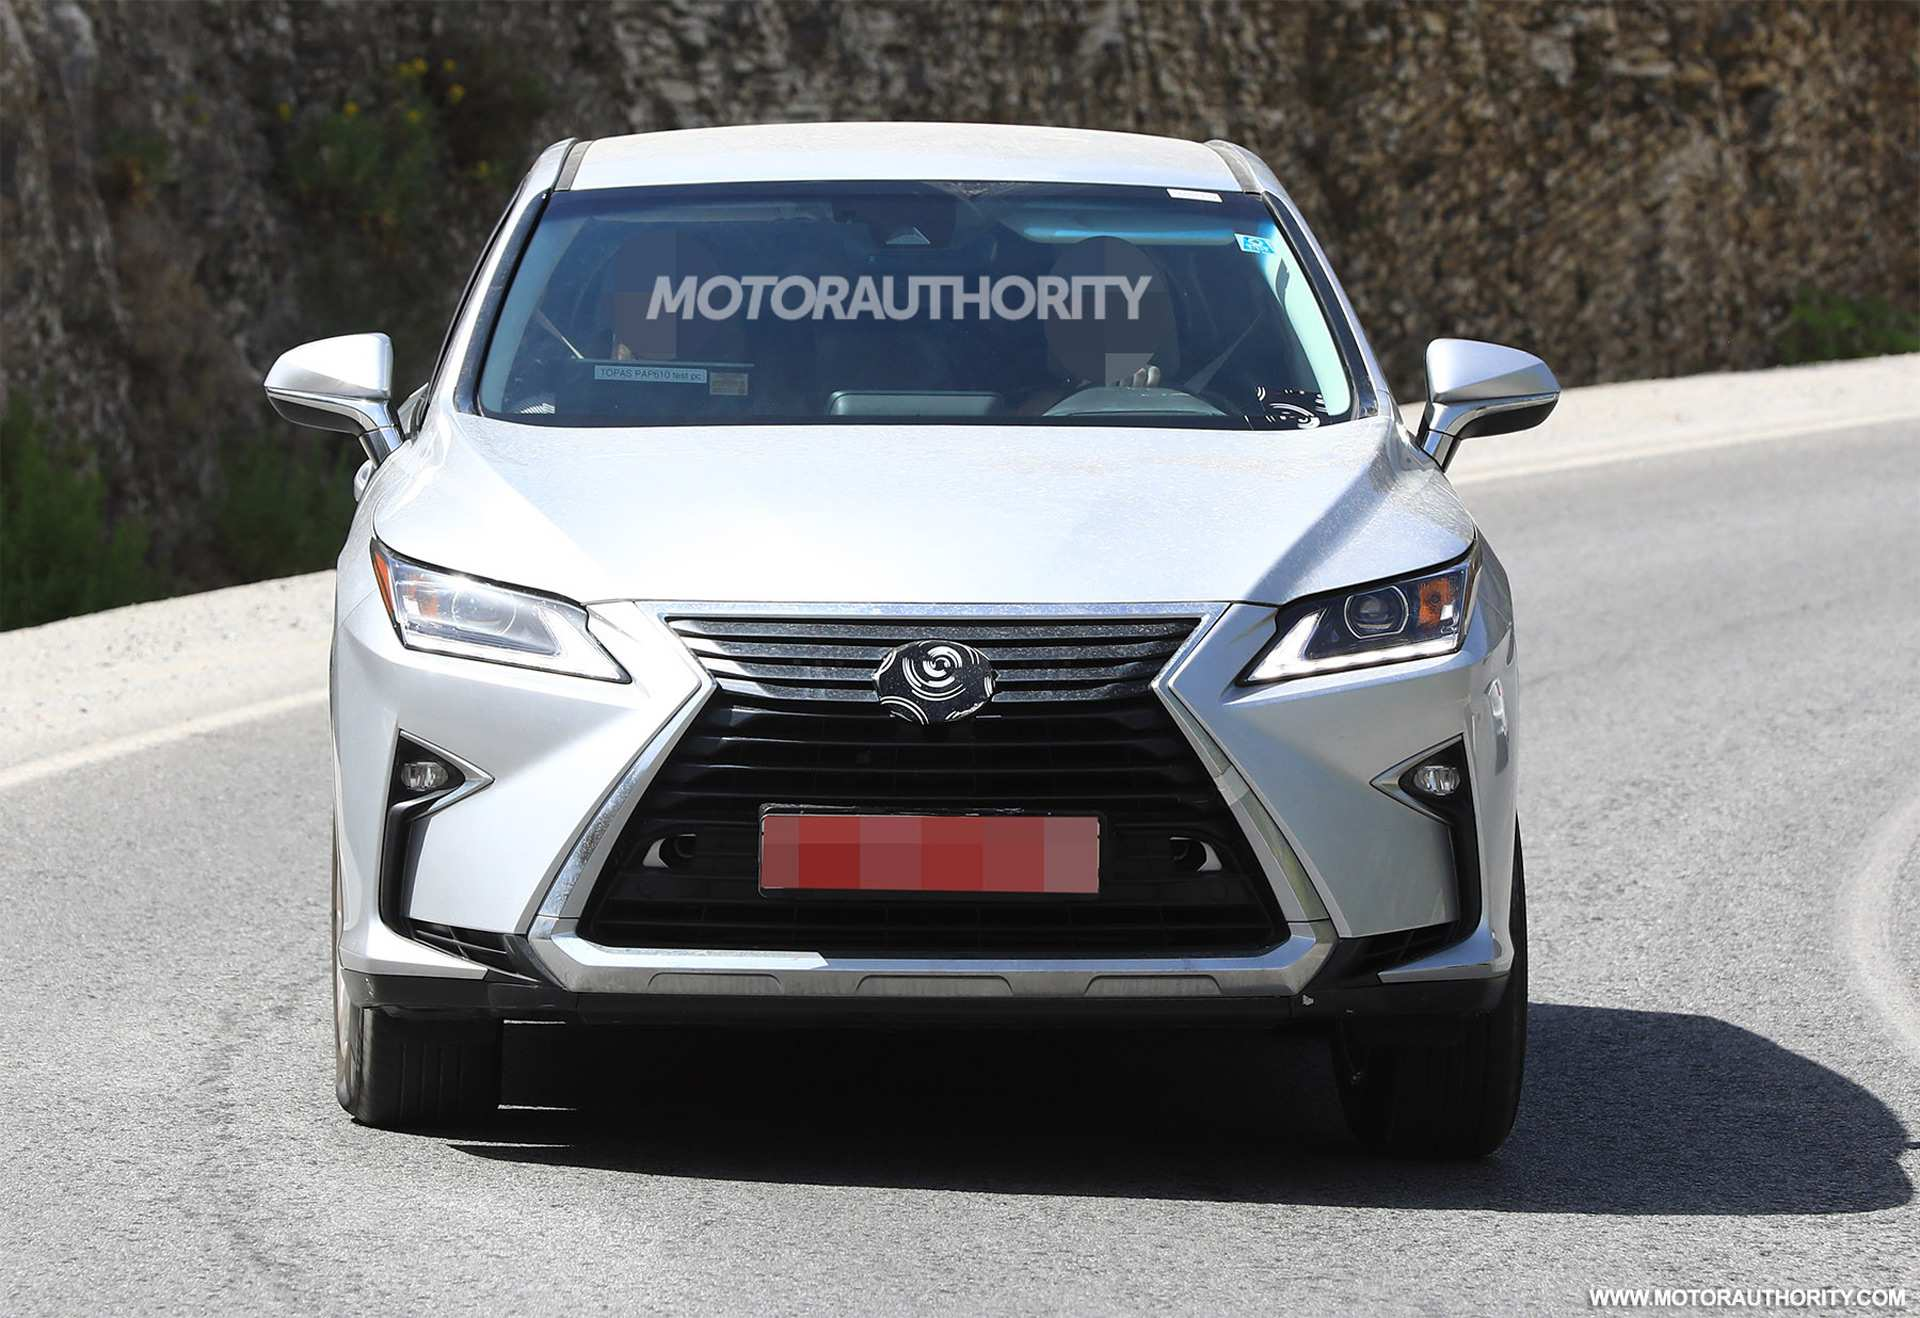 49 The 2020 Lexus Rx 350 Vs 2019 First Drive